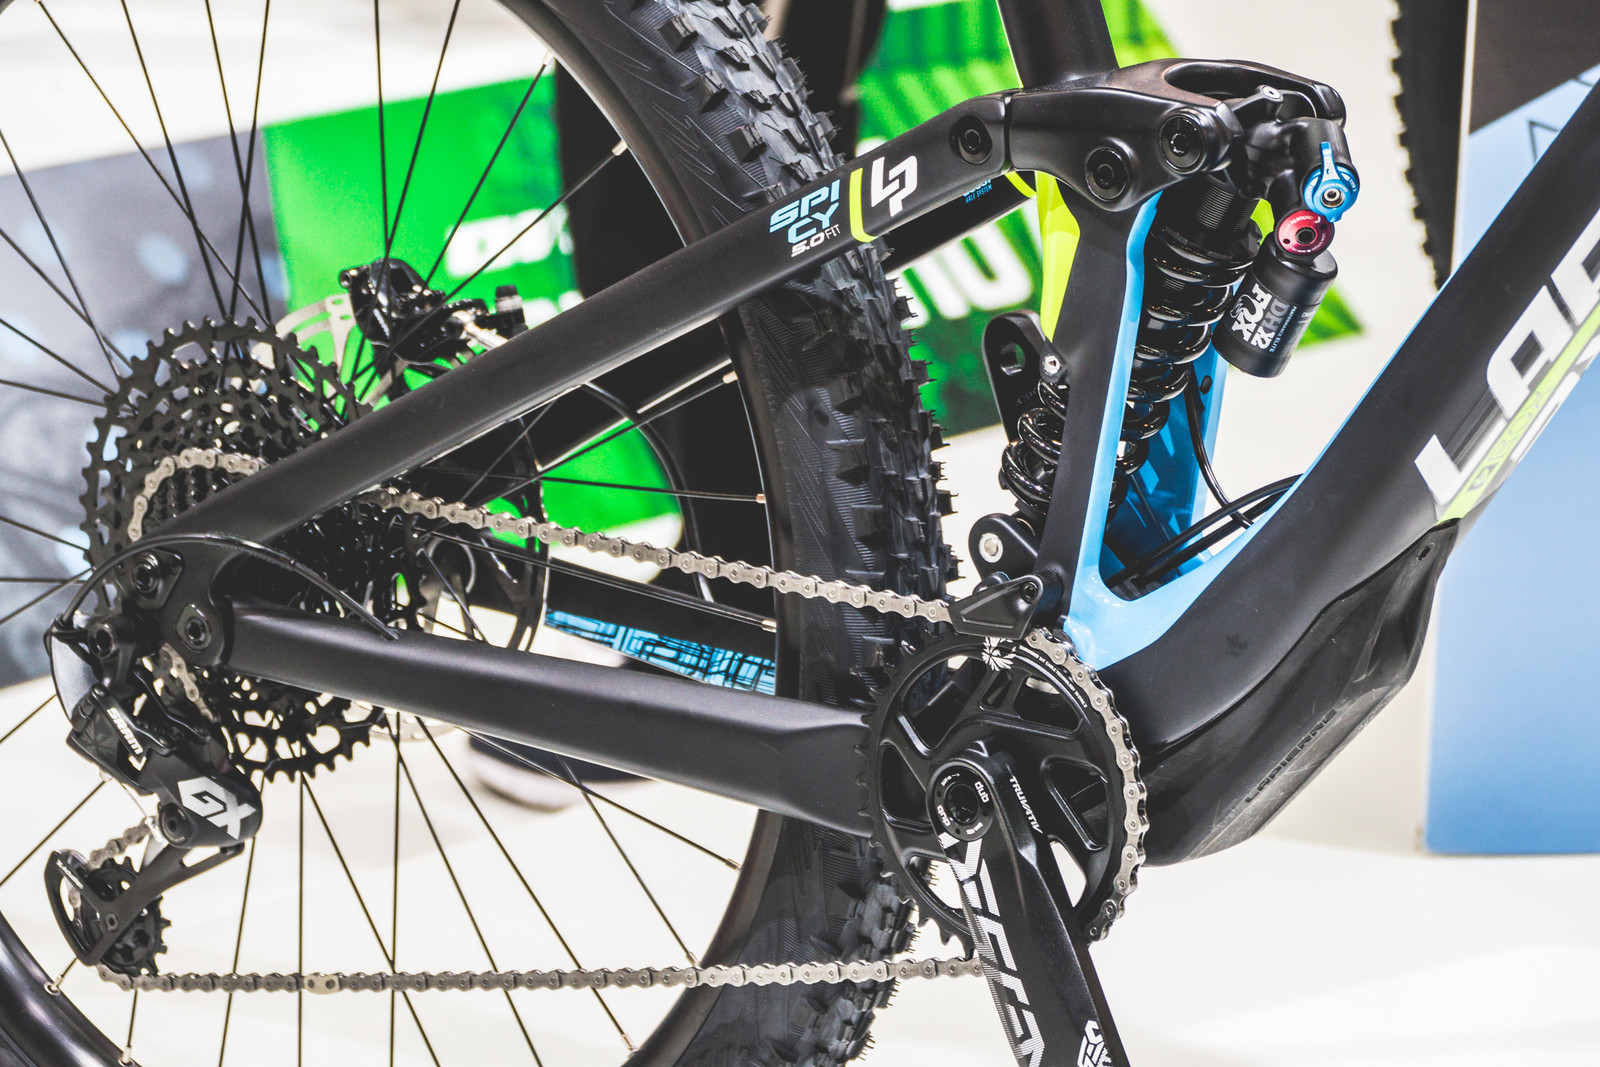 Lapierre Moves to an Entirely New Suspension Design